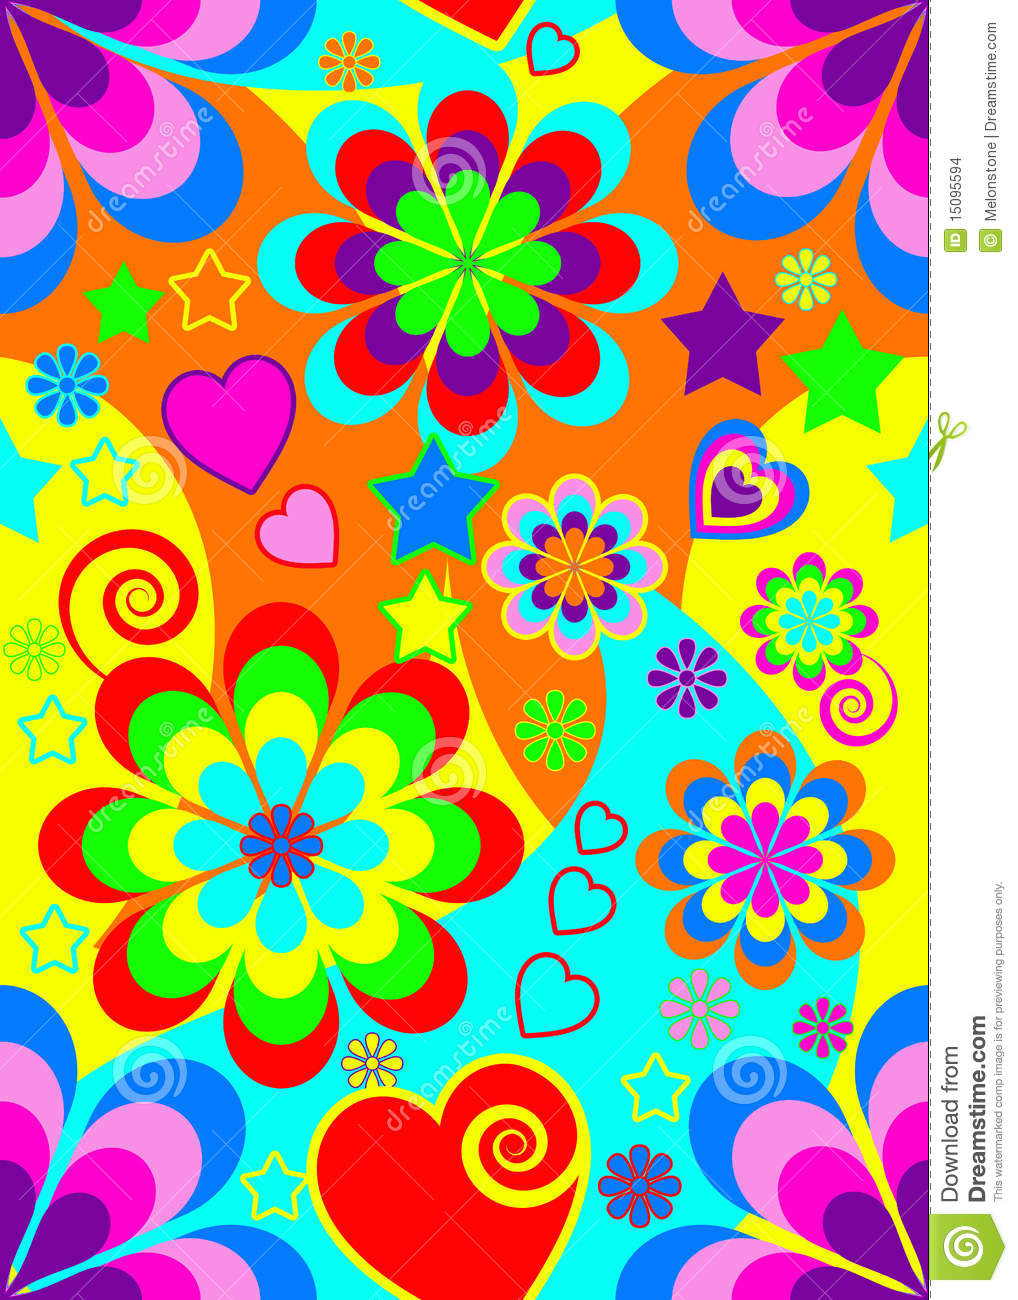 60s psychedelic backgrounds images pictures becuo